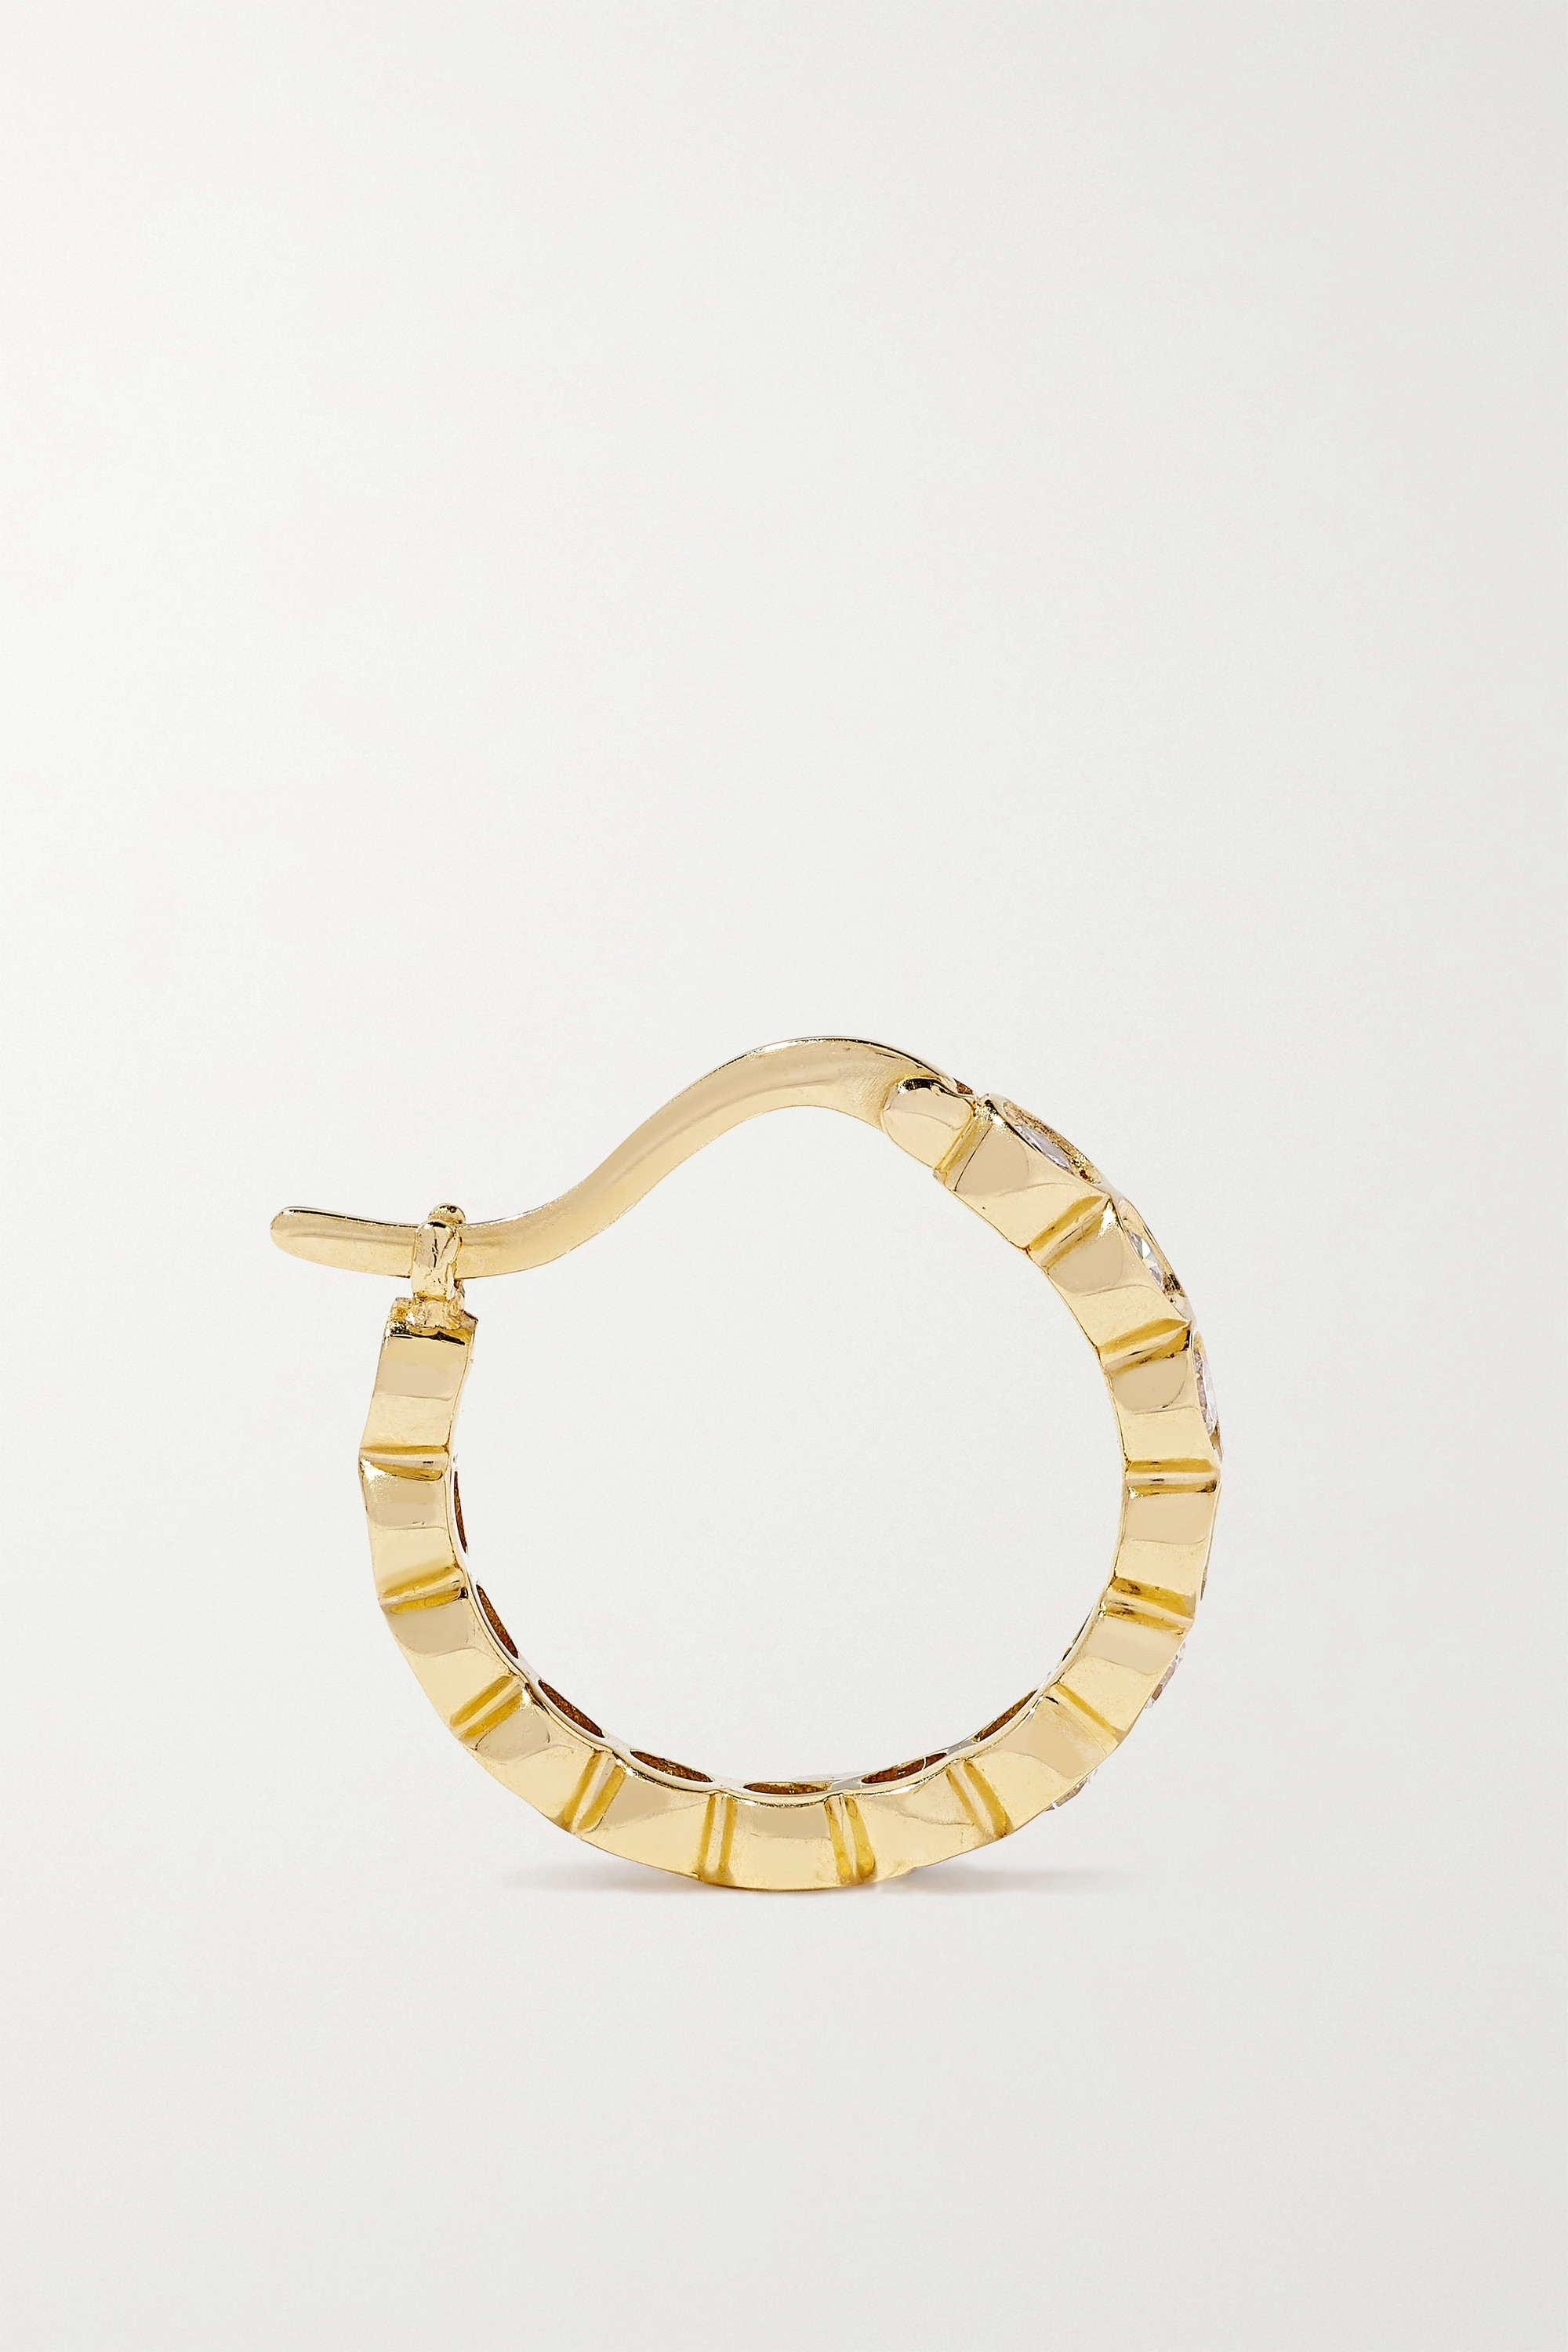 OCTAVIA ELIZABETH + NET SUSTAIN Petite Chloe recycled 18-karat gold diamond hoop earrings